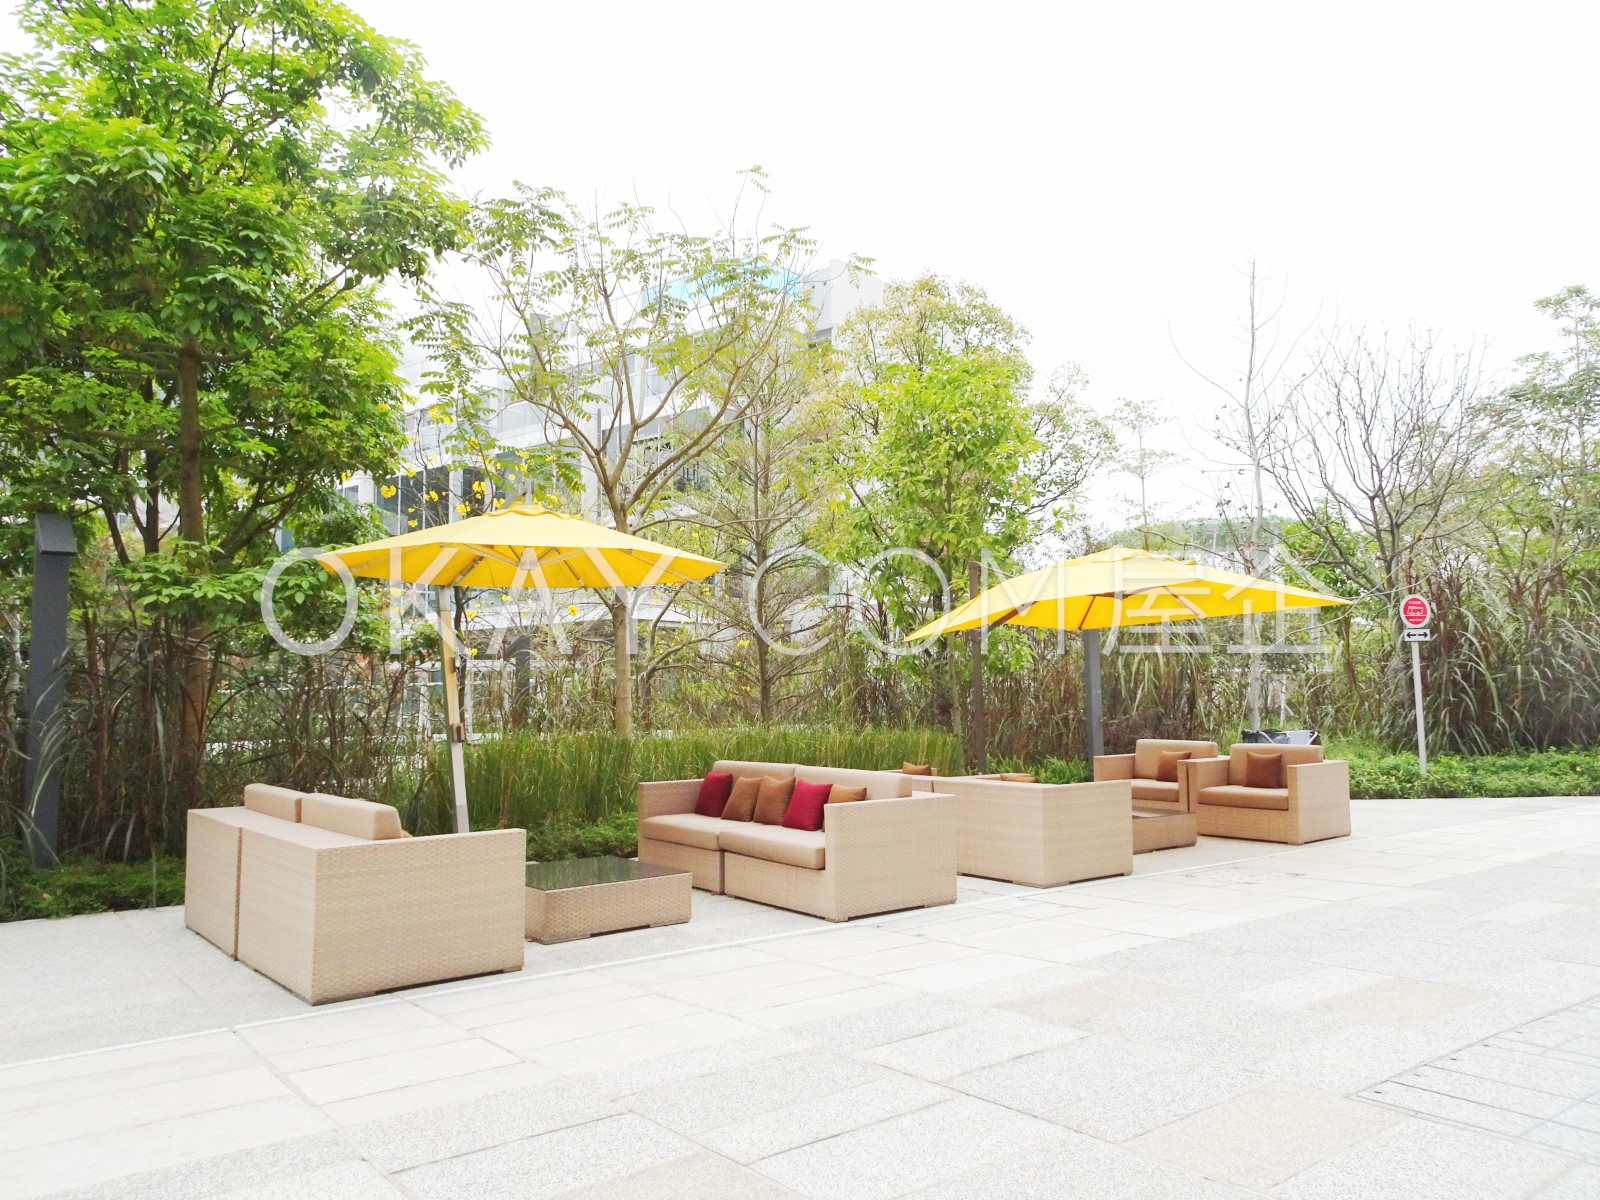 Communal Outdoor Seating